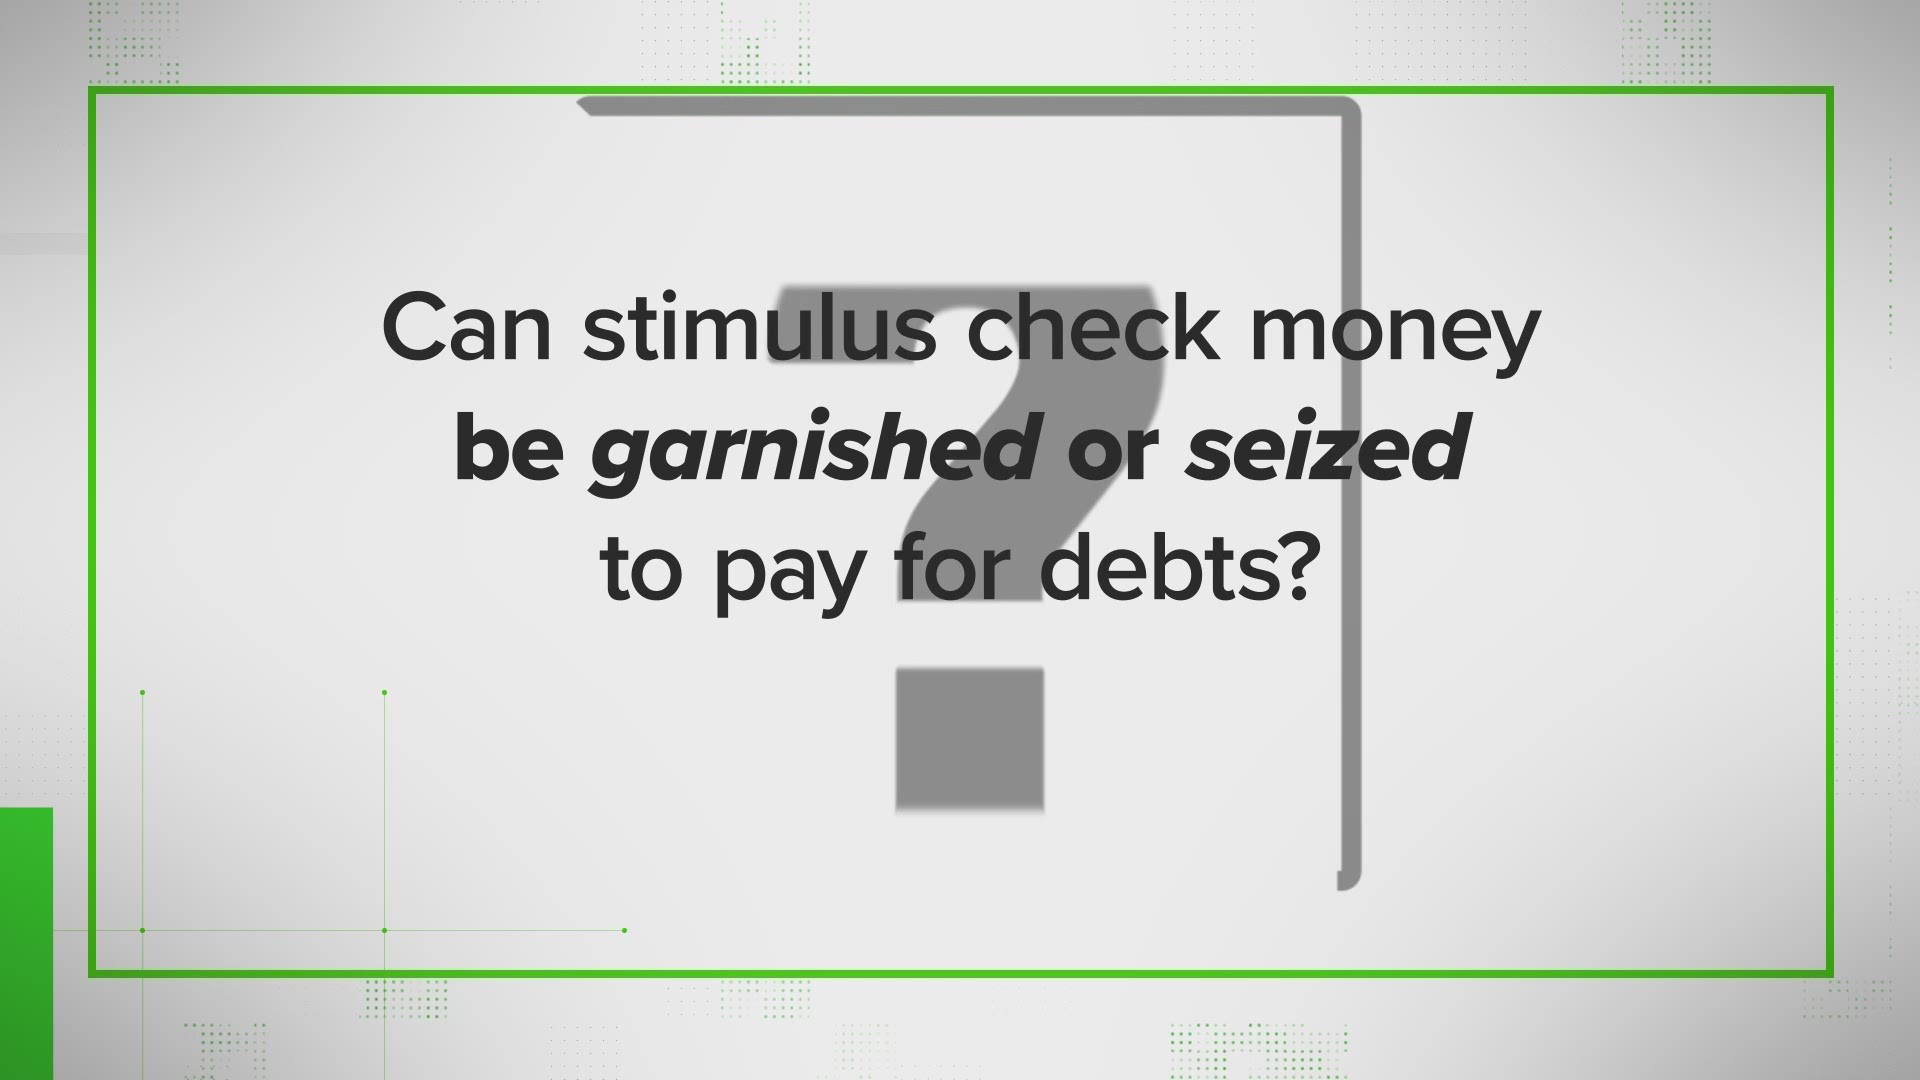 Verify Will I Have To Pay To Get The Money Answering More Of The Top Stimulus Check Questions Wusa9 Com That depends on whether you gave the irs your direct the irs will also send stimulus check recipients a confirmation letter 15 days after the payment was sent. verify can stimulus check money be garnished answering the most asked questions